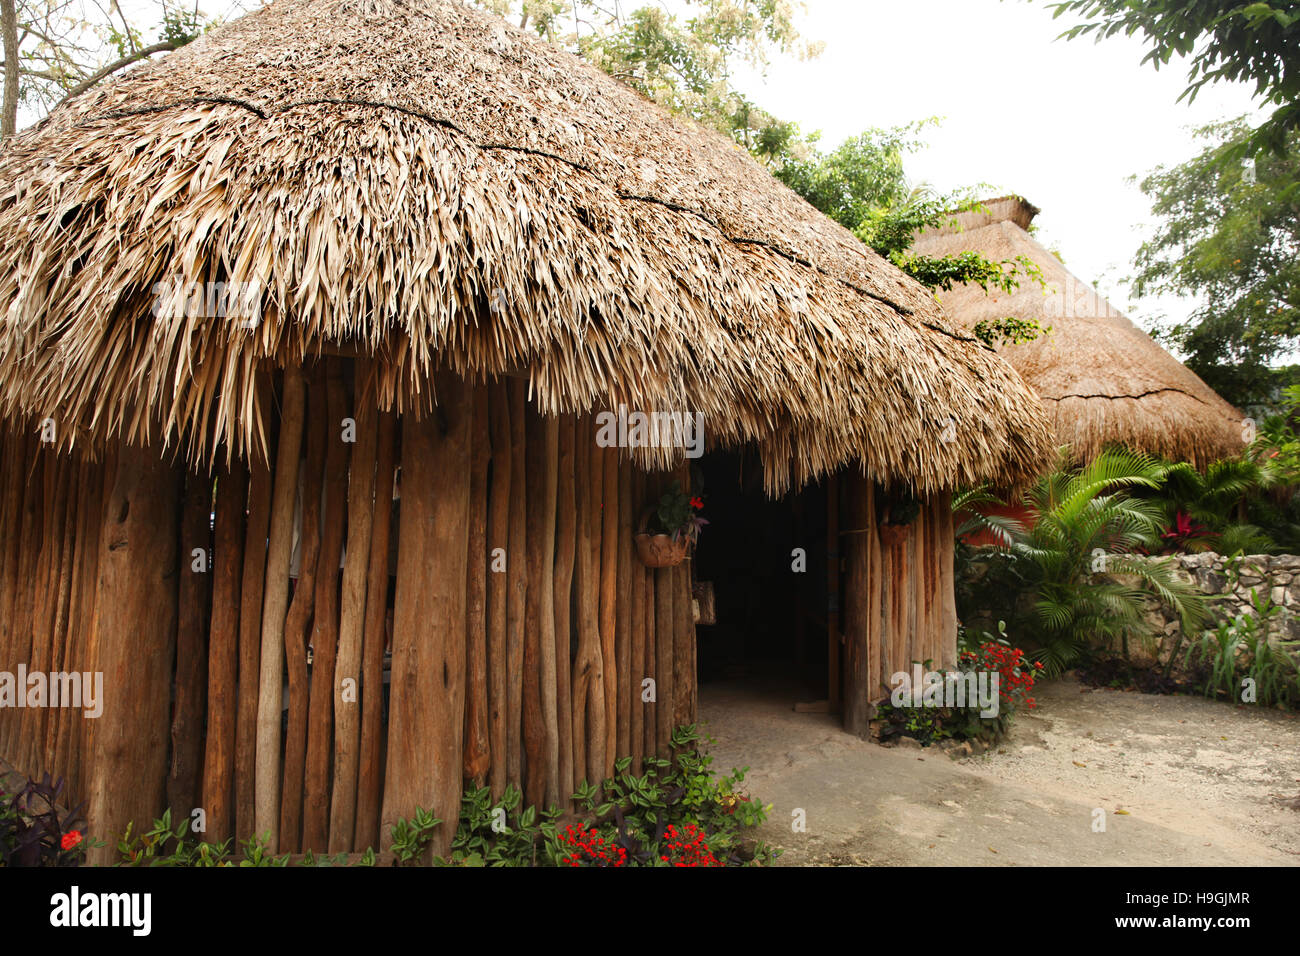 Stock Photo   Traditional Hut Or Home Made From Natural Materials U0026 Thatched  Roof, Cozumel, Yucatan Peninsula, Quintana Roo, Mexico